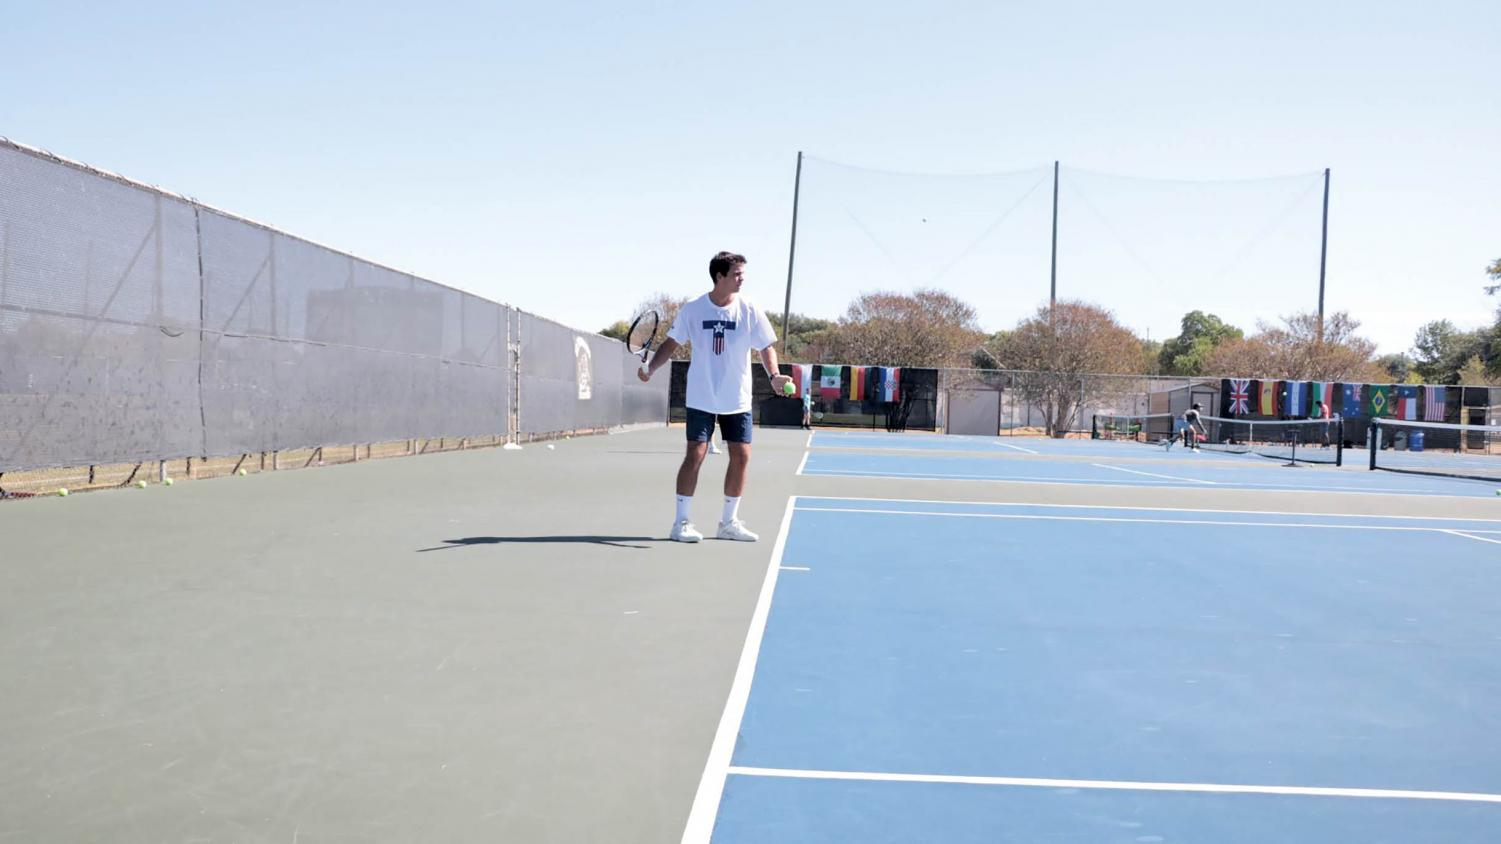 Junior tennis player Luis Diaz prepares to play a forehand during a team practice. Over his career on the hilltop, Diaz has accumulated a singles record of 29-13.